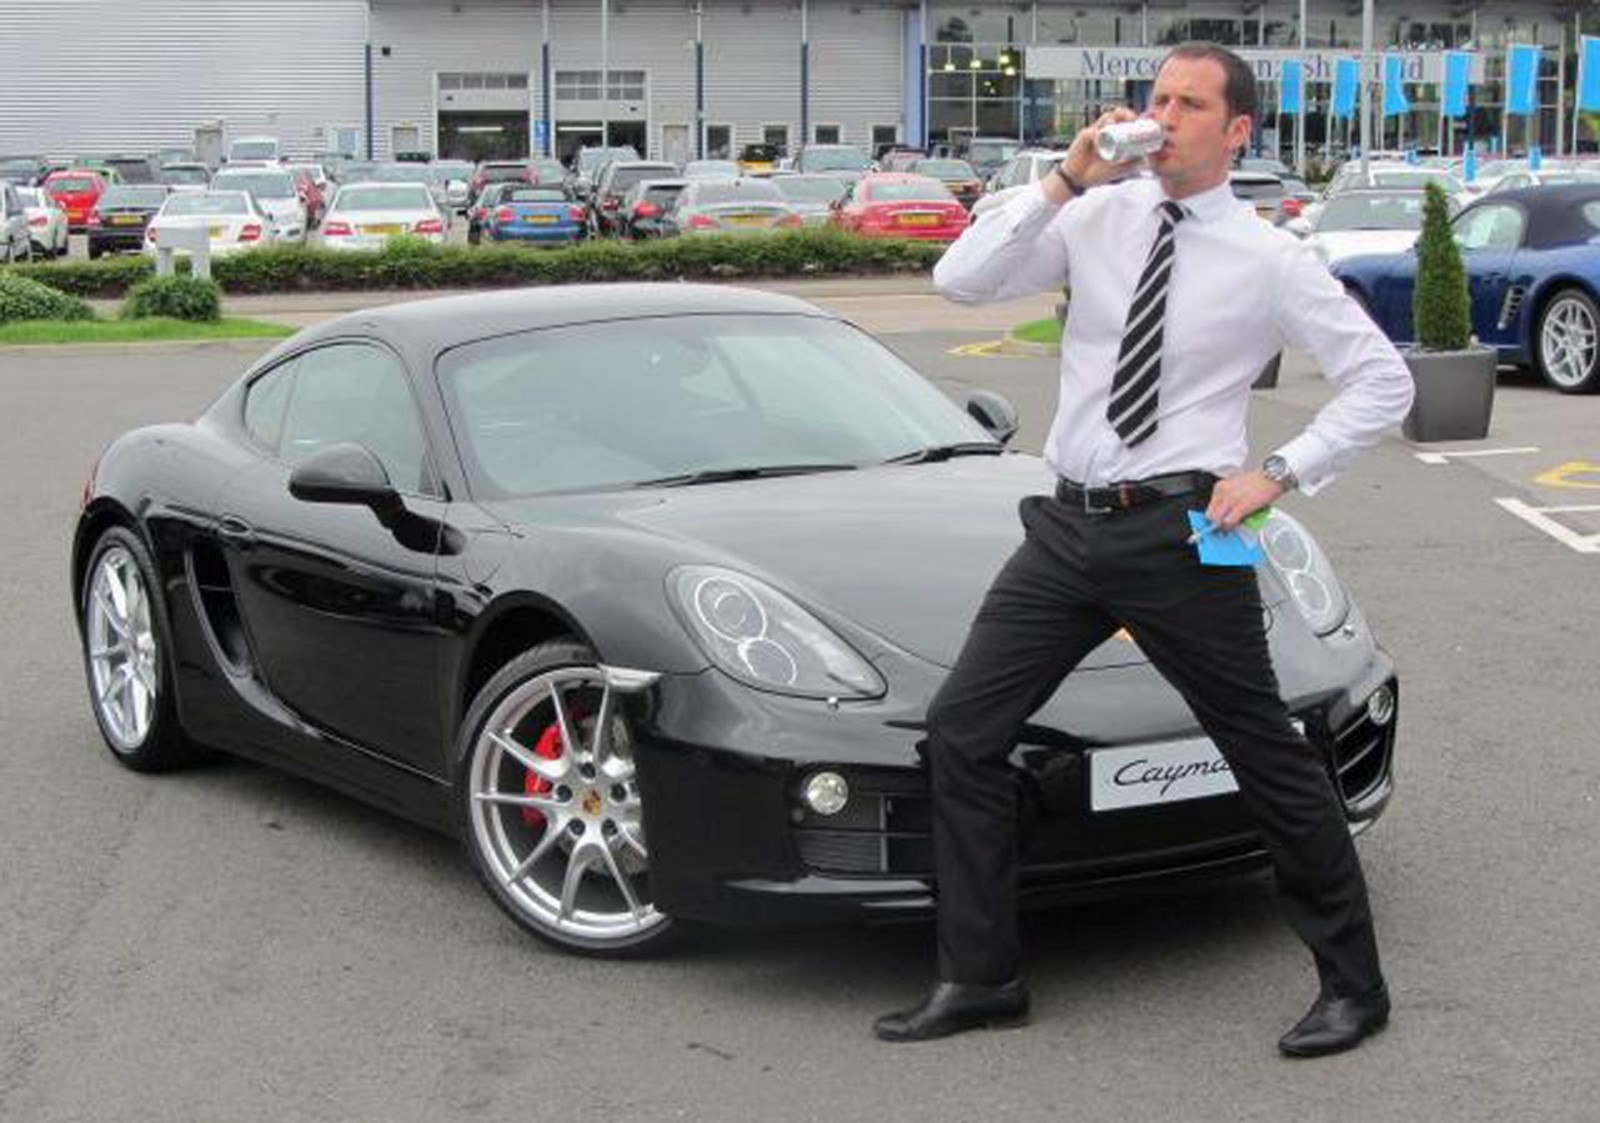 Porsche salesman who crashed into two teens is released from jail after just four months